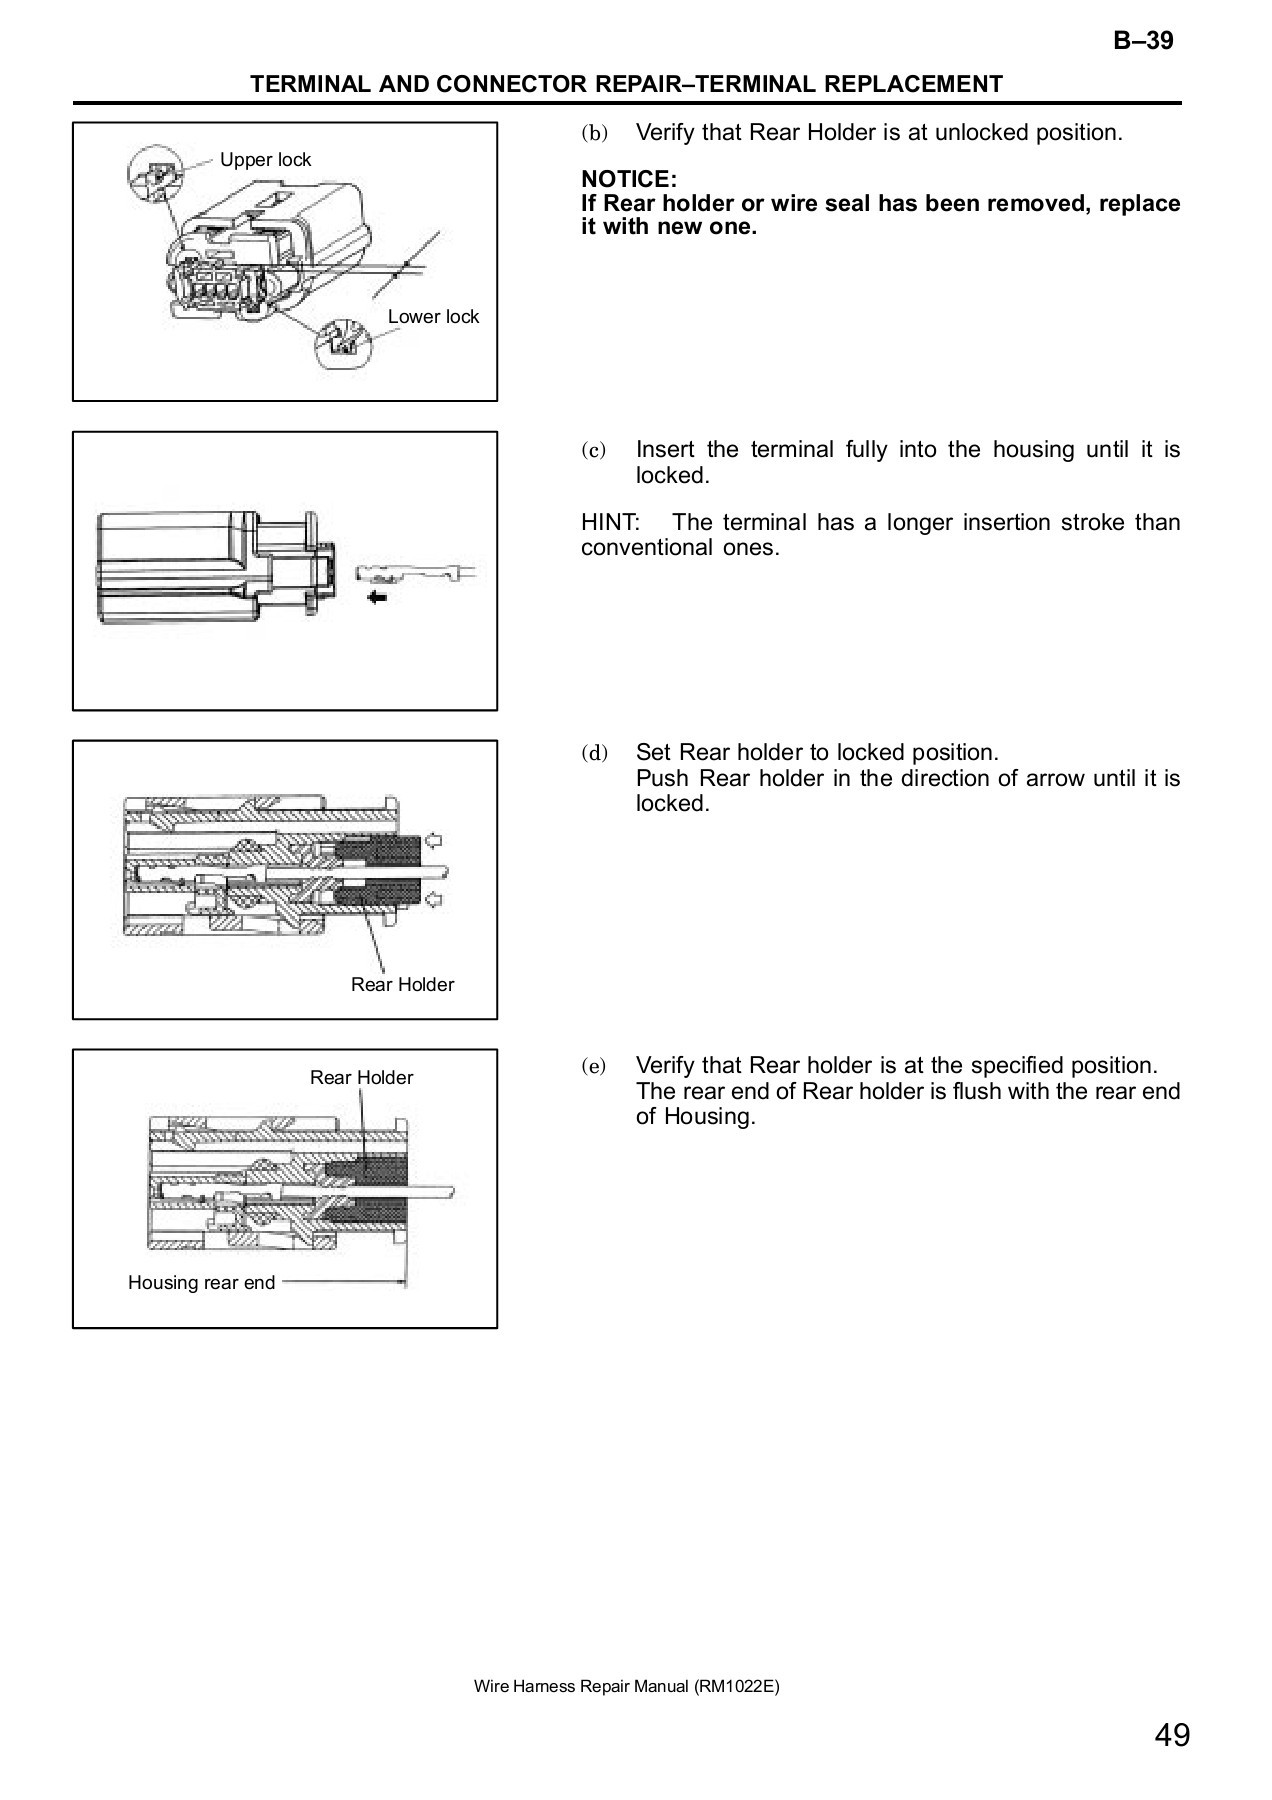 hight resolution of toyota wiring repair manual pdfdrive com pages 51 100 text version fliphtml5